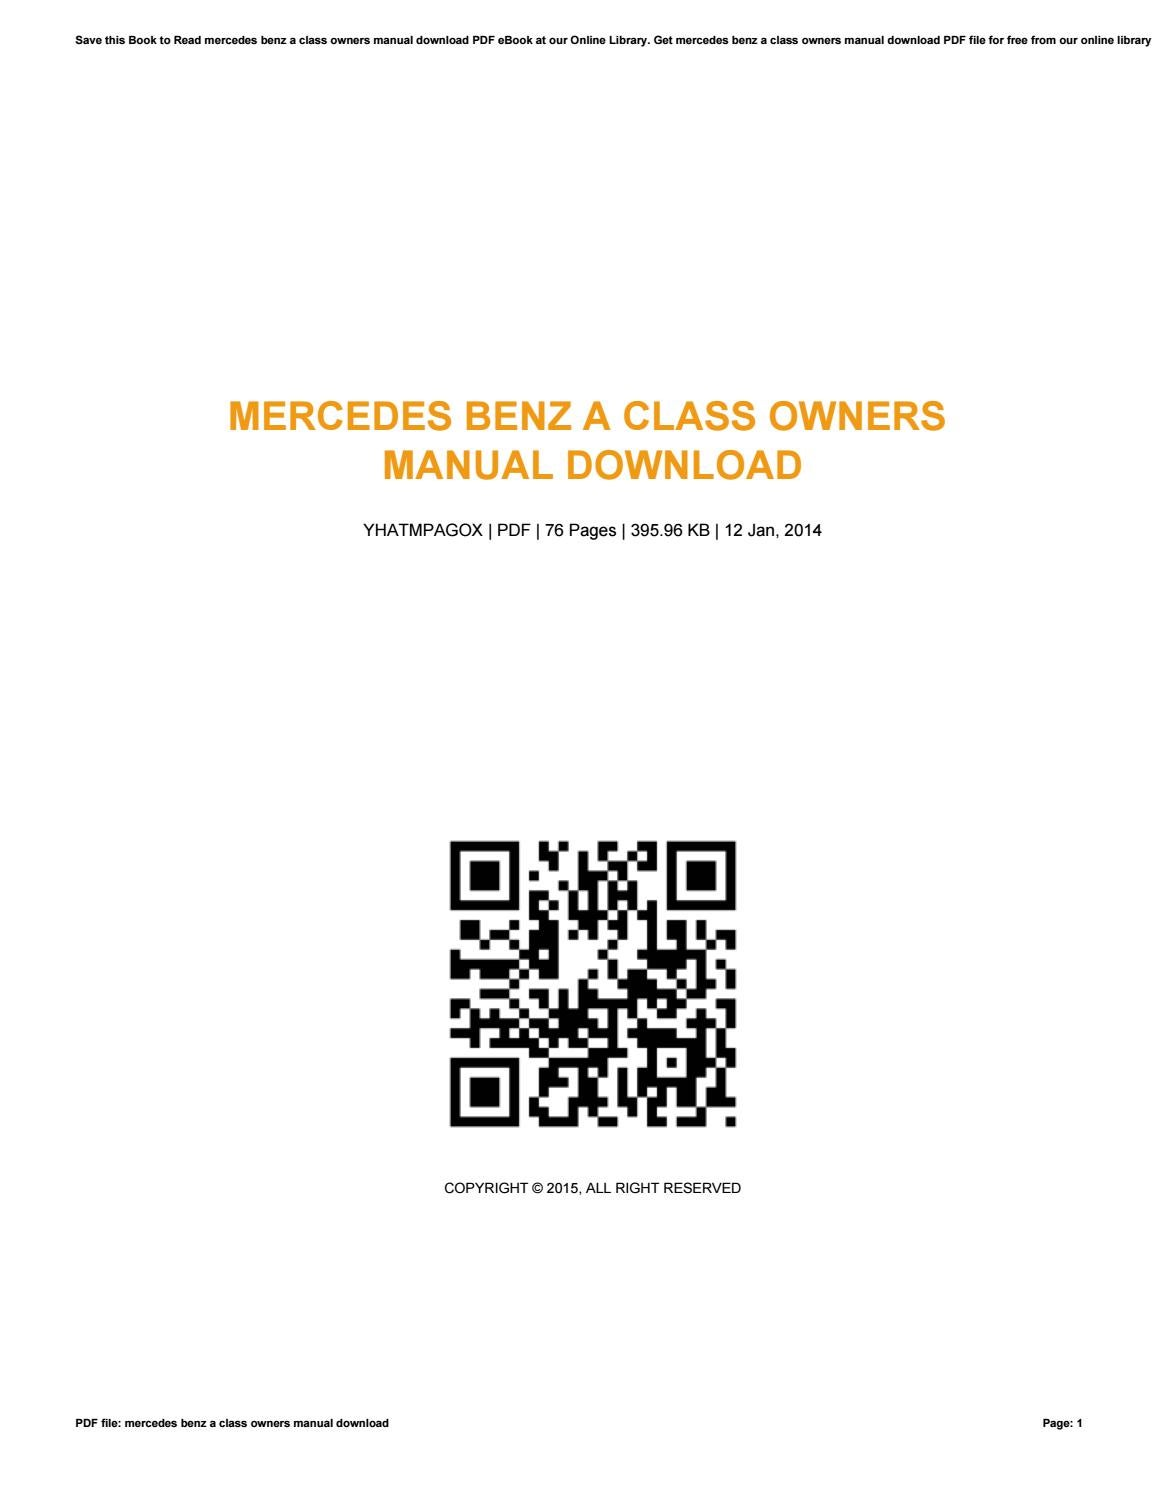 Mercedes benz a class owners manual download by